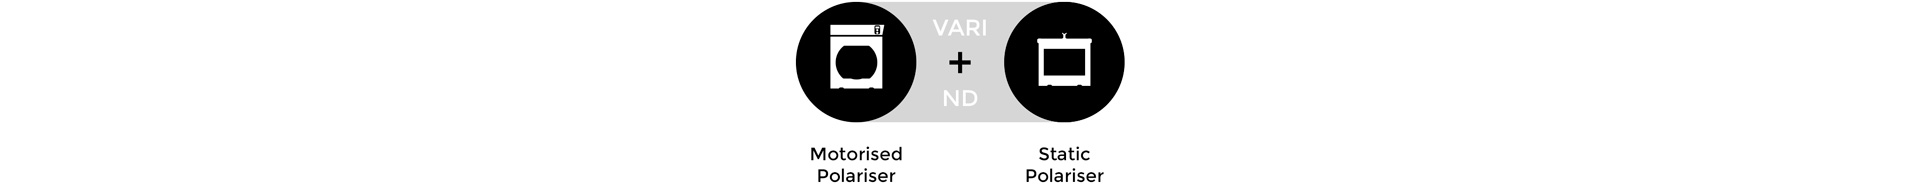 Cinefade standalone variable ND application icon VariND